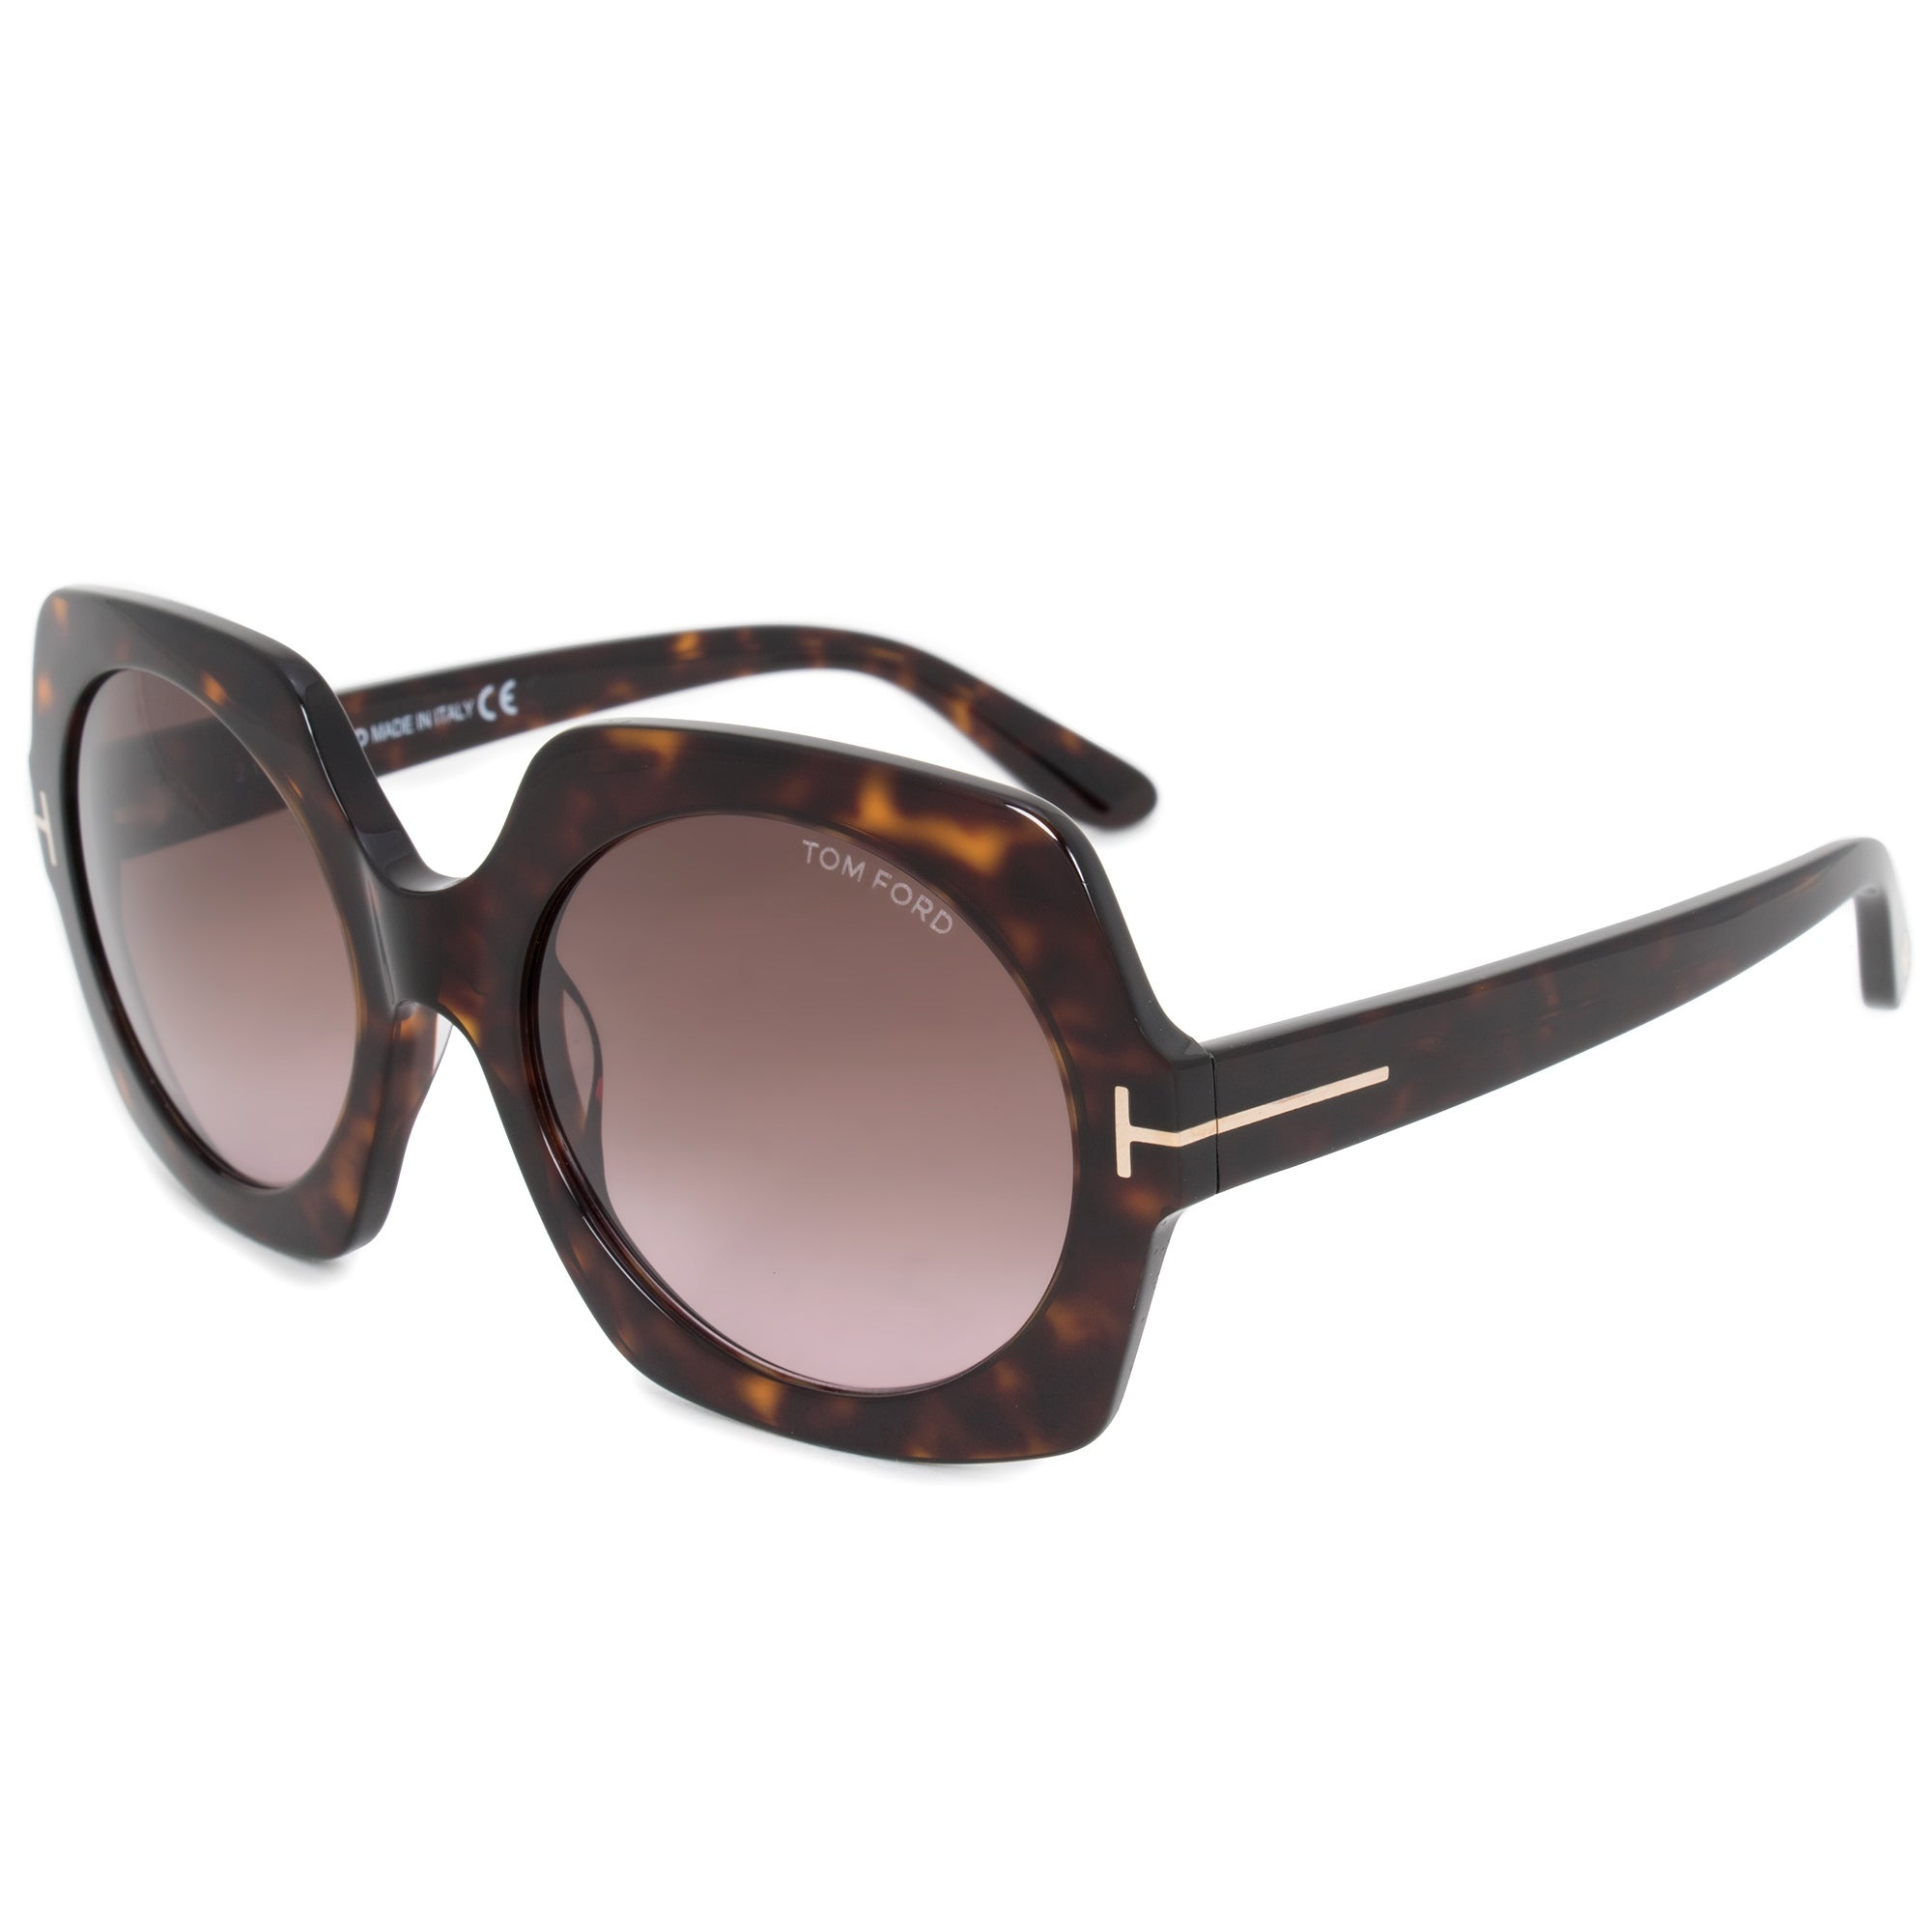 cfddbcbe15 Shop Tom Ford Sofia Round Sunglasses FT0535 52T 57 - Free Shipping Today -  Overstock - 21408566